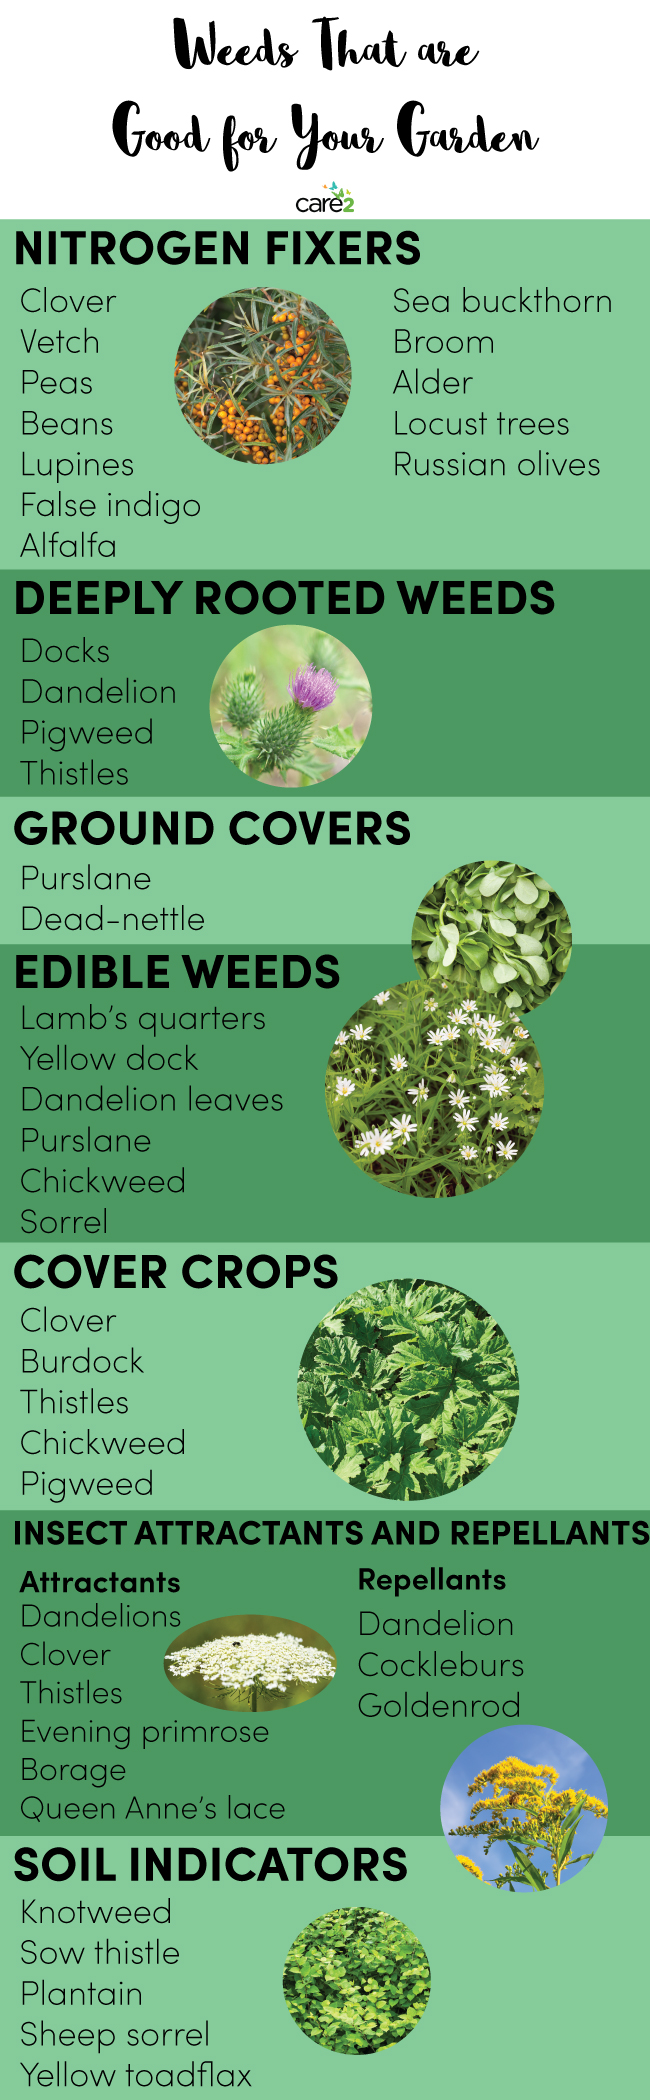 Weeds That Are Good for Your Garden